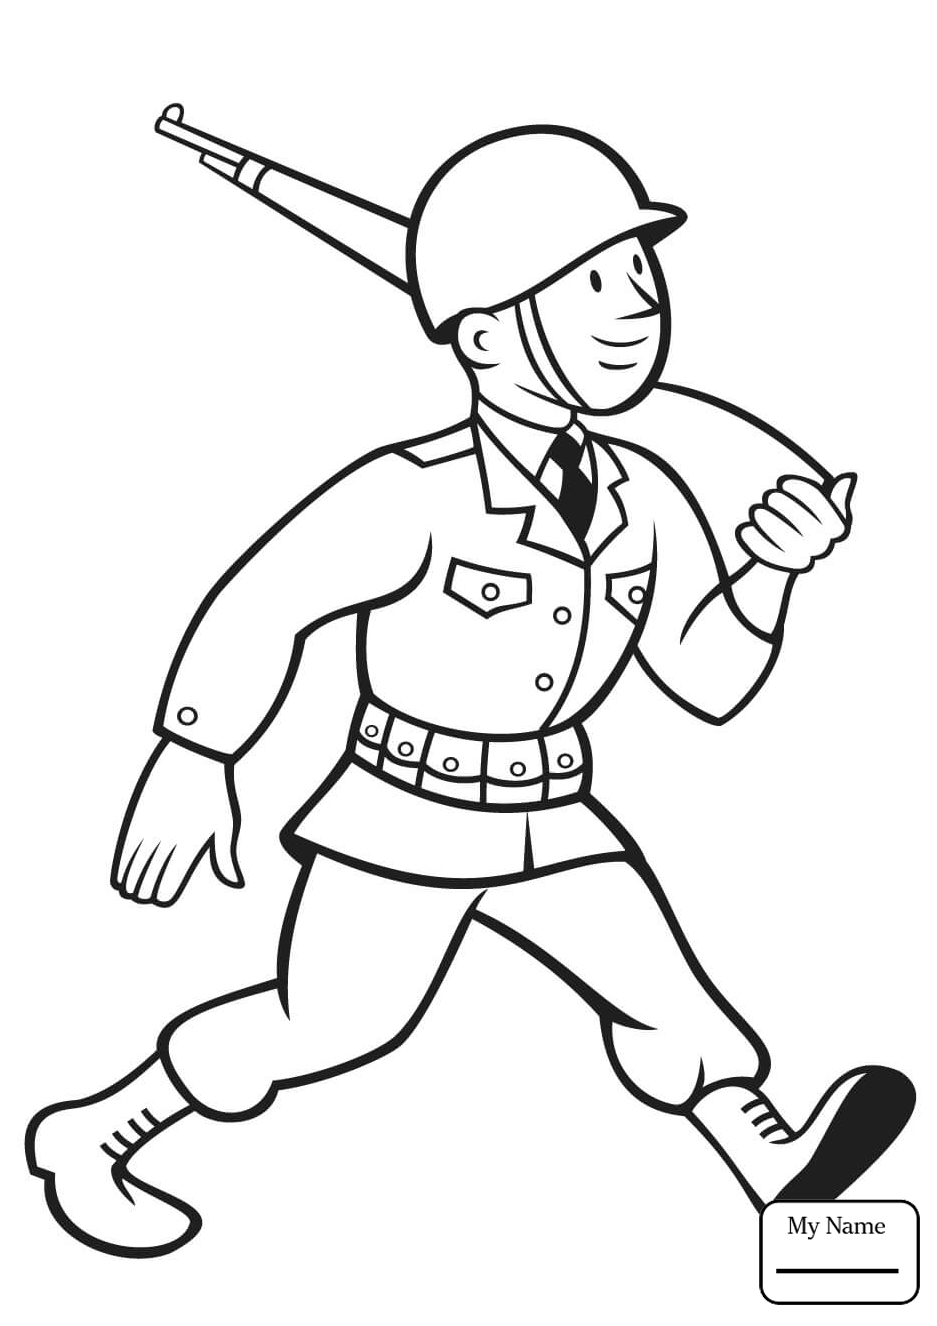 937x1326 Soldiers Navajo Code Talkers Military Coloring Pages